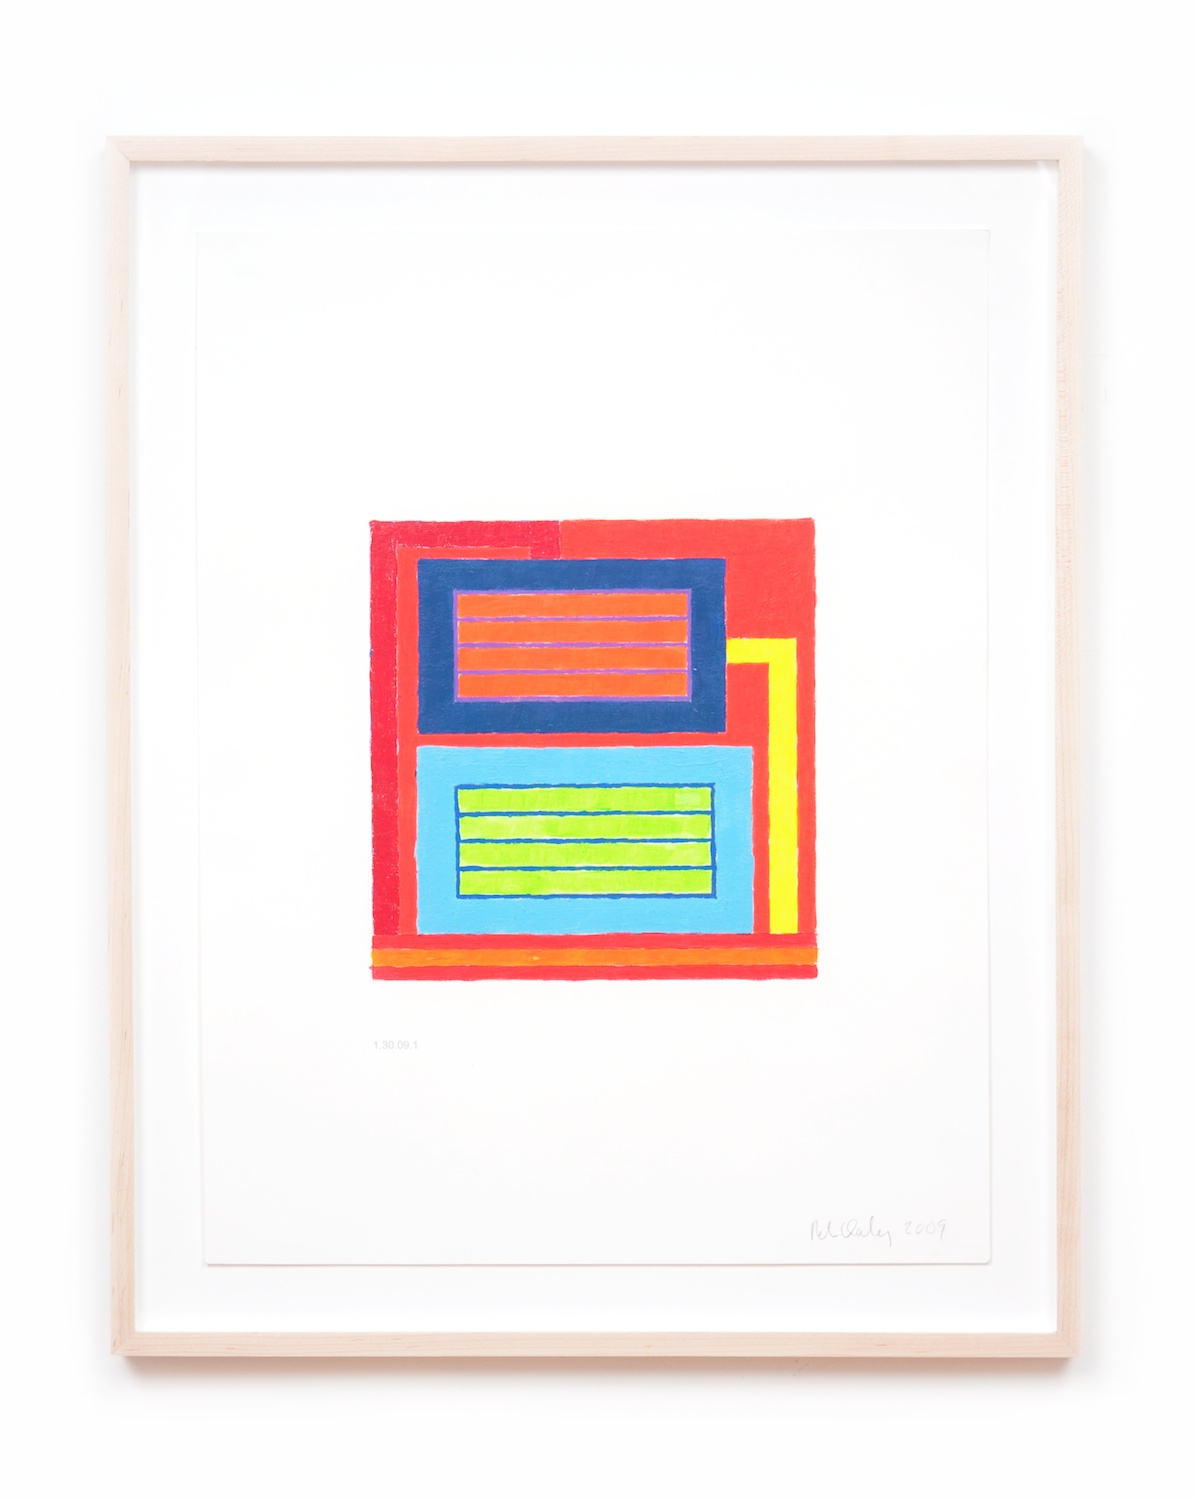 Peter Halley  Untitled  2009 Acrylic and Day-glo acrylic on computer-printed paper 21h x 16w in PH003